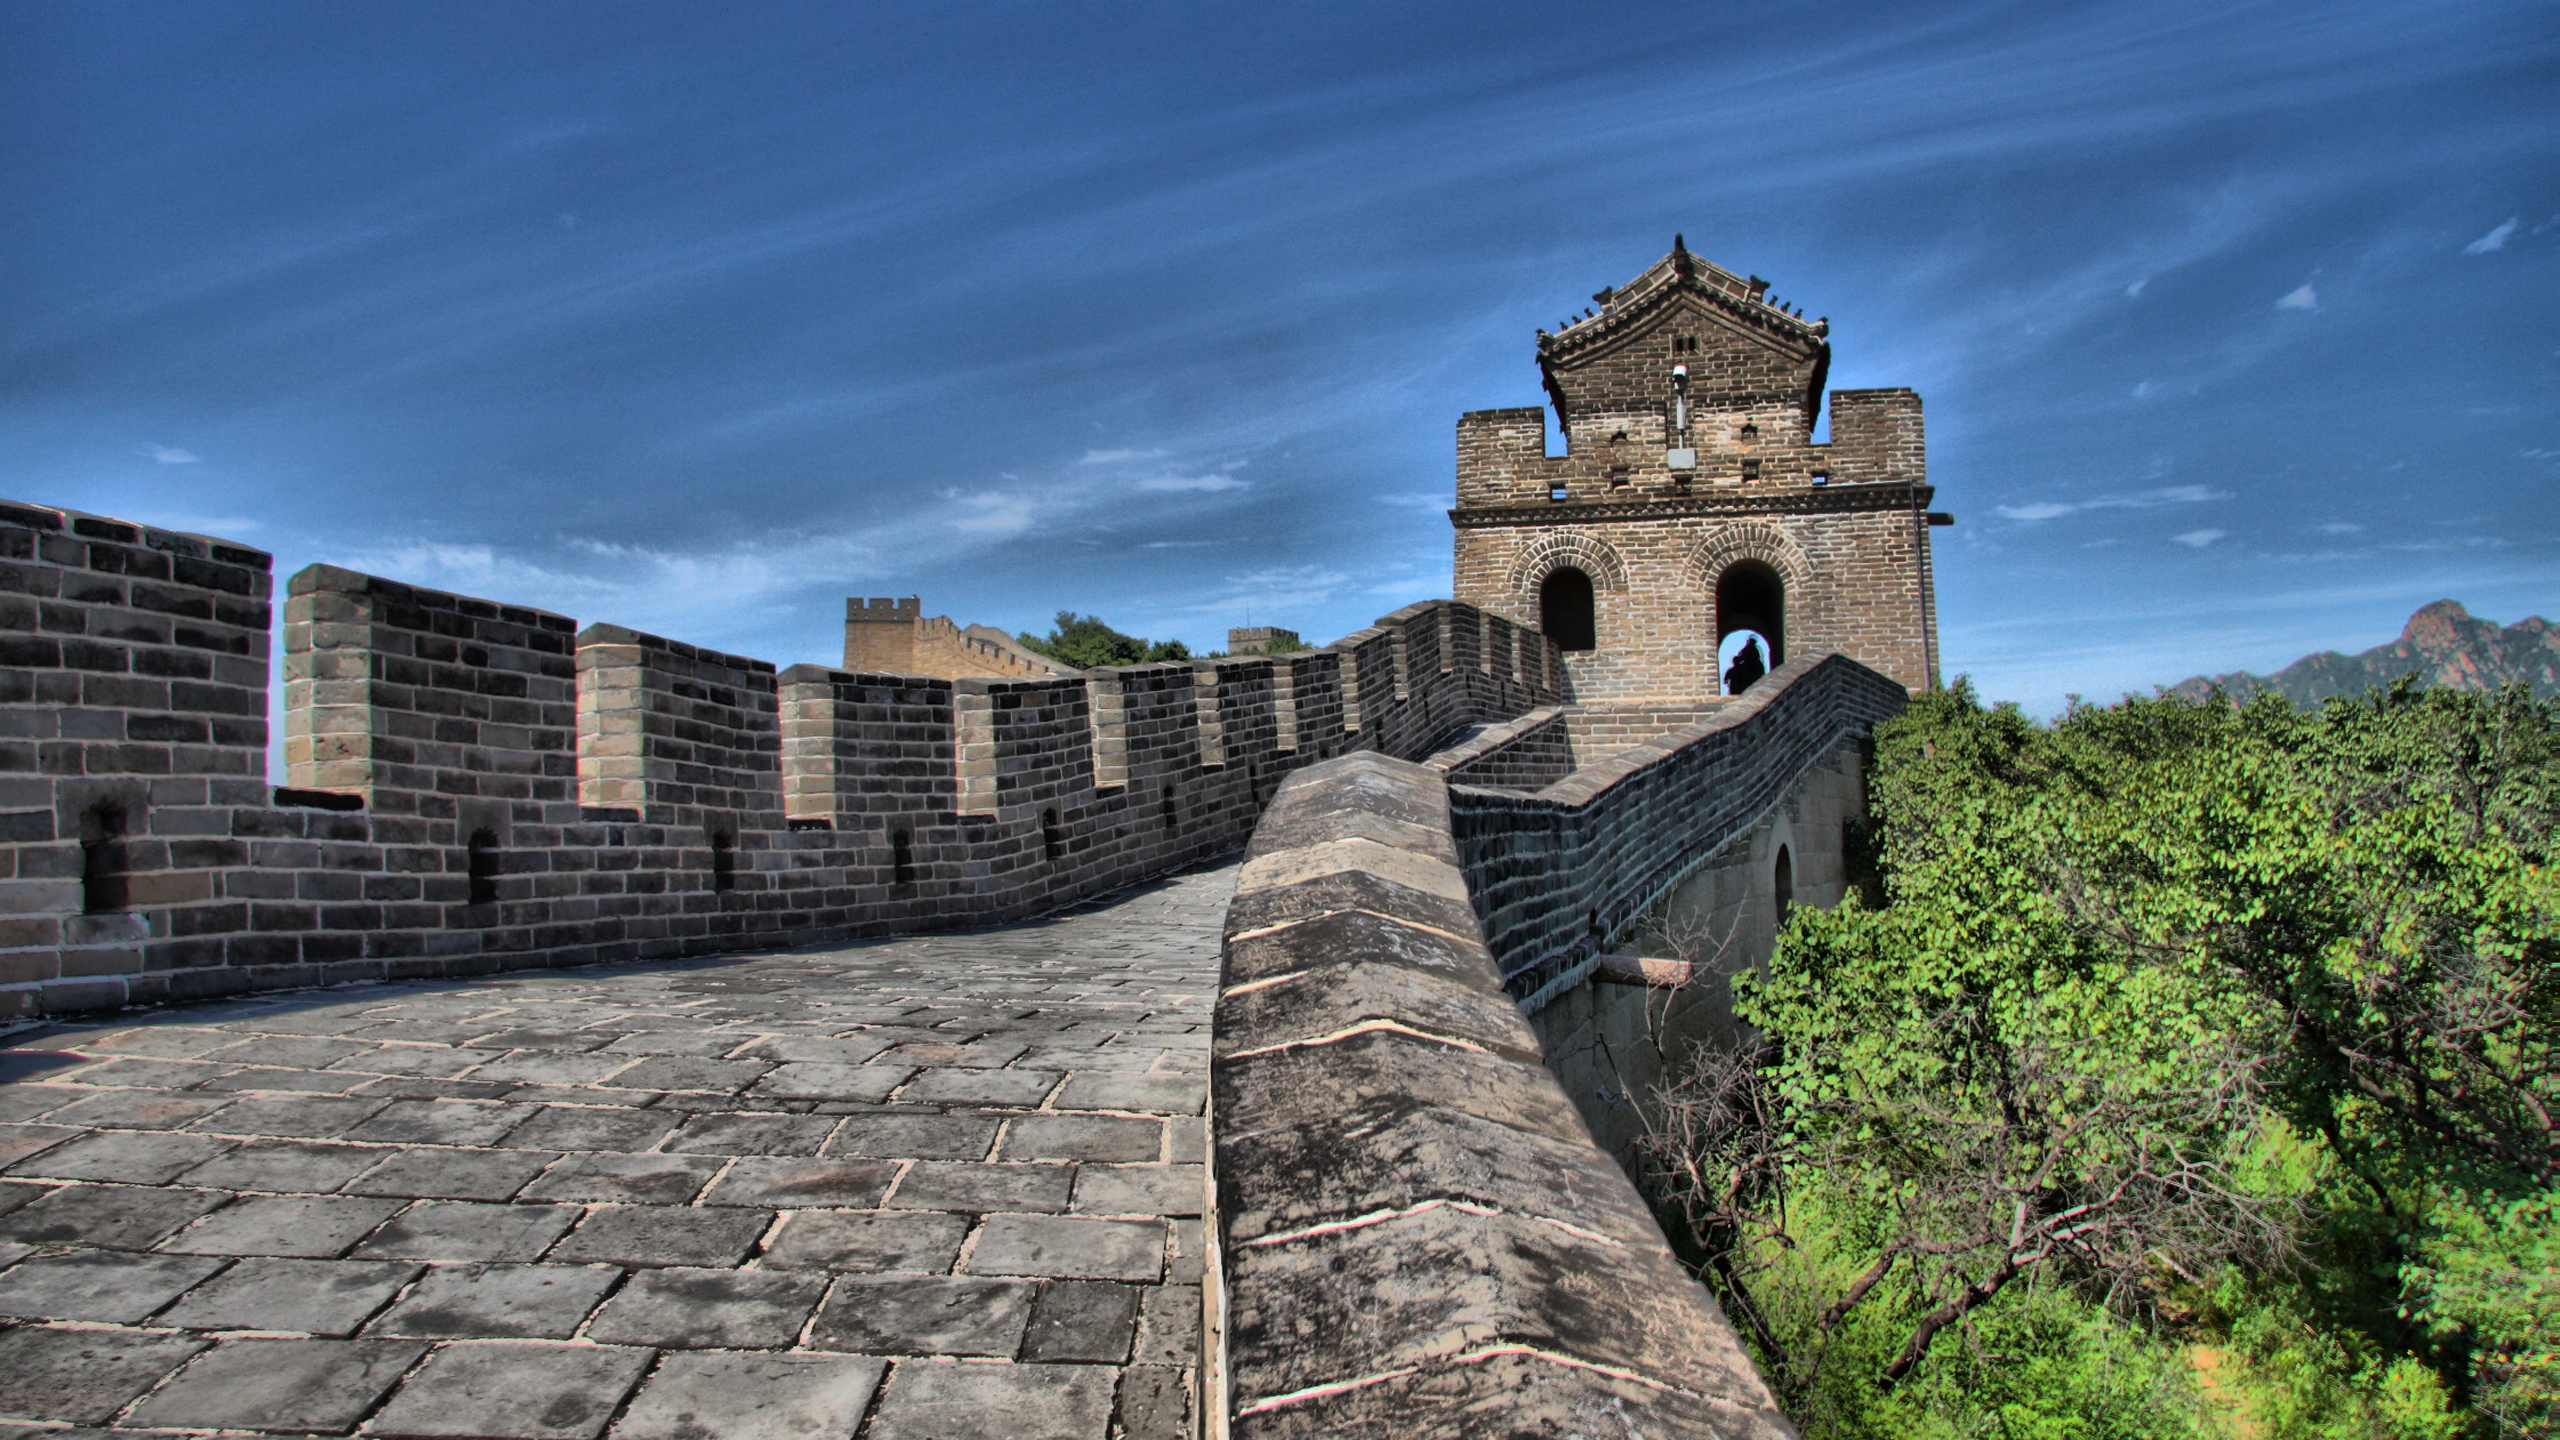 56 great wall of china hd wallpapers | background images - wallpaper